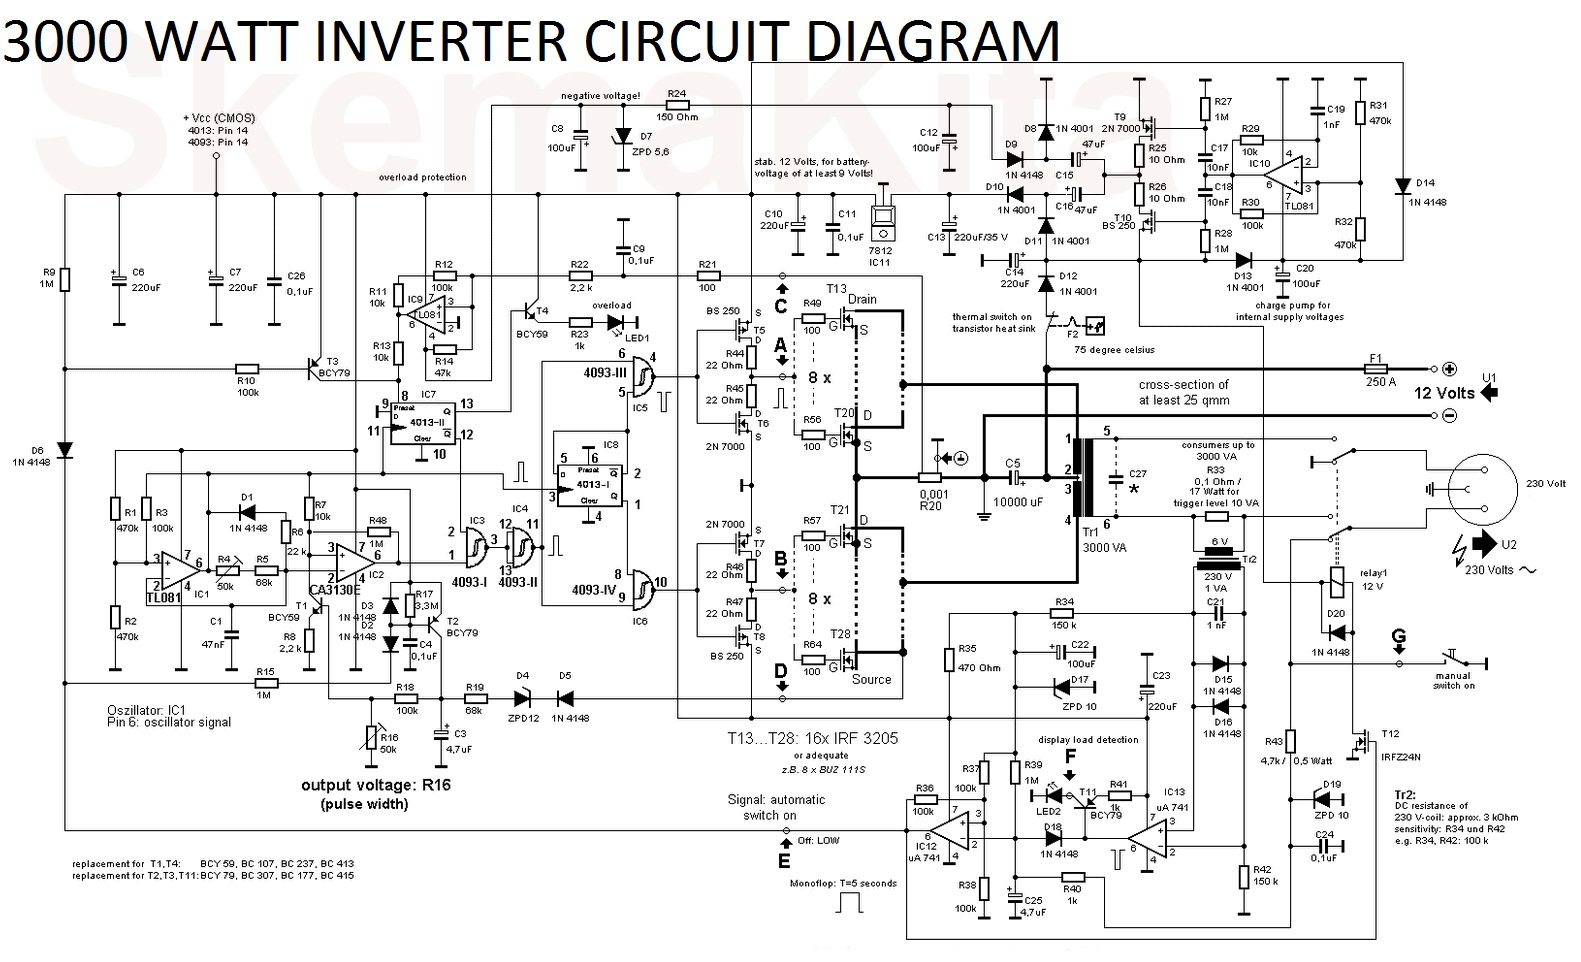 circuit diagram of an inverter diagram of an atom structure #11